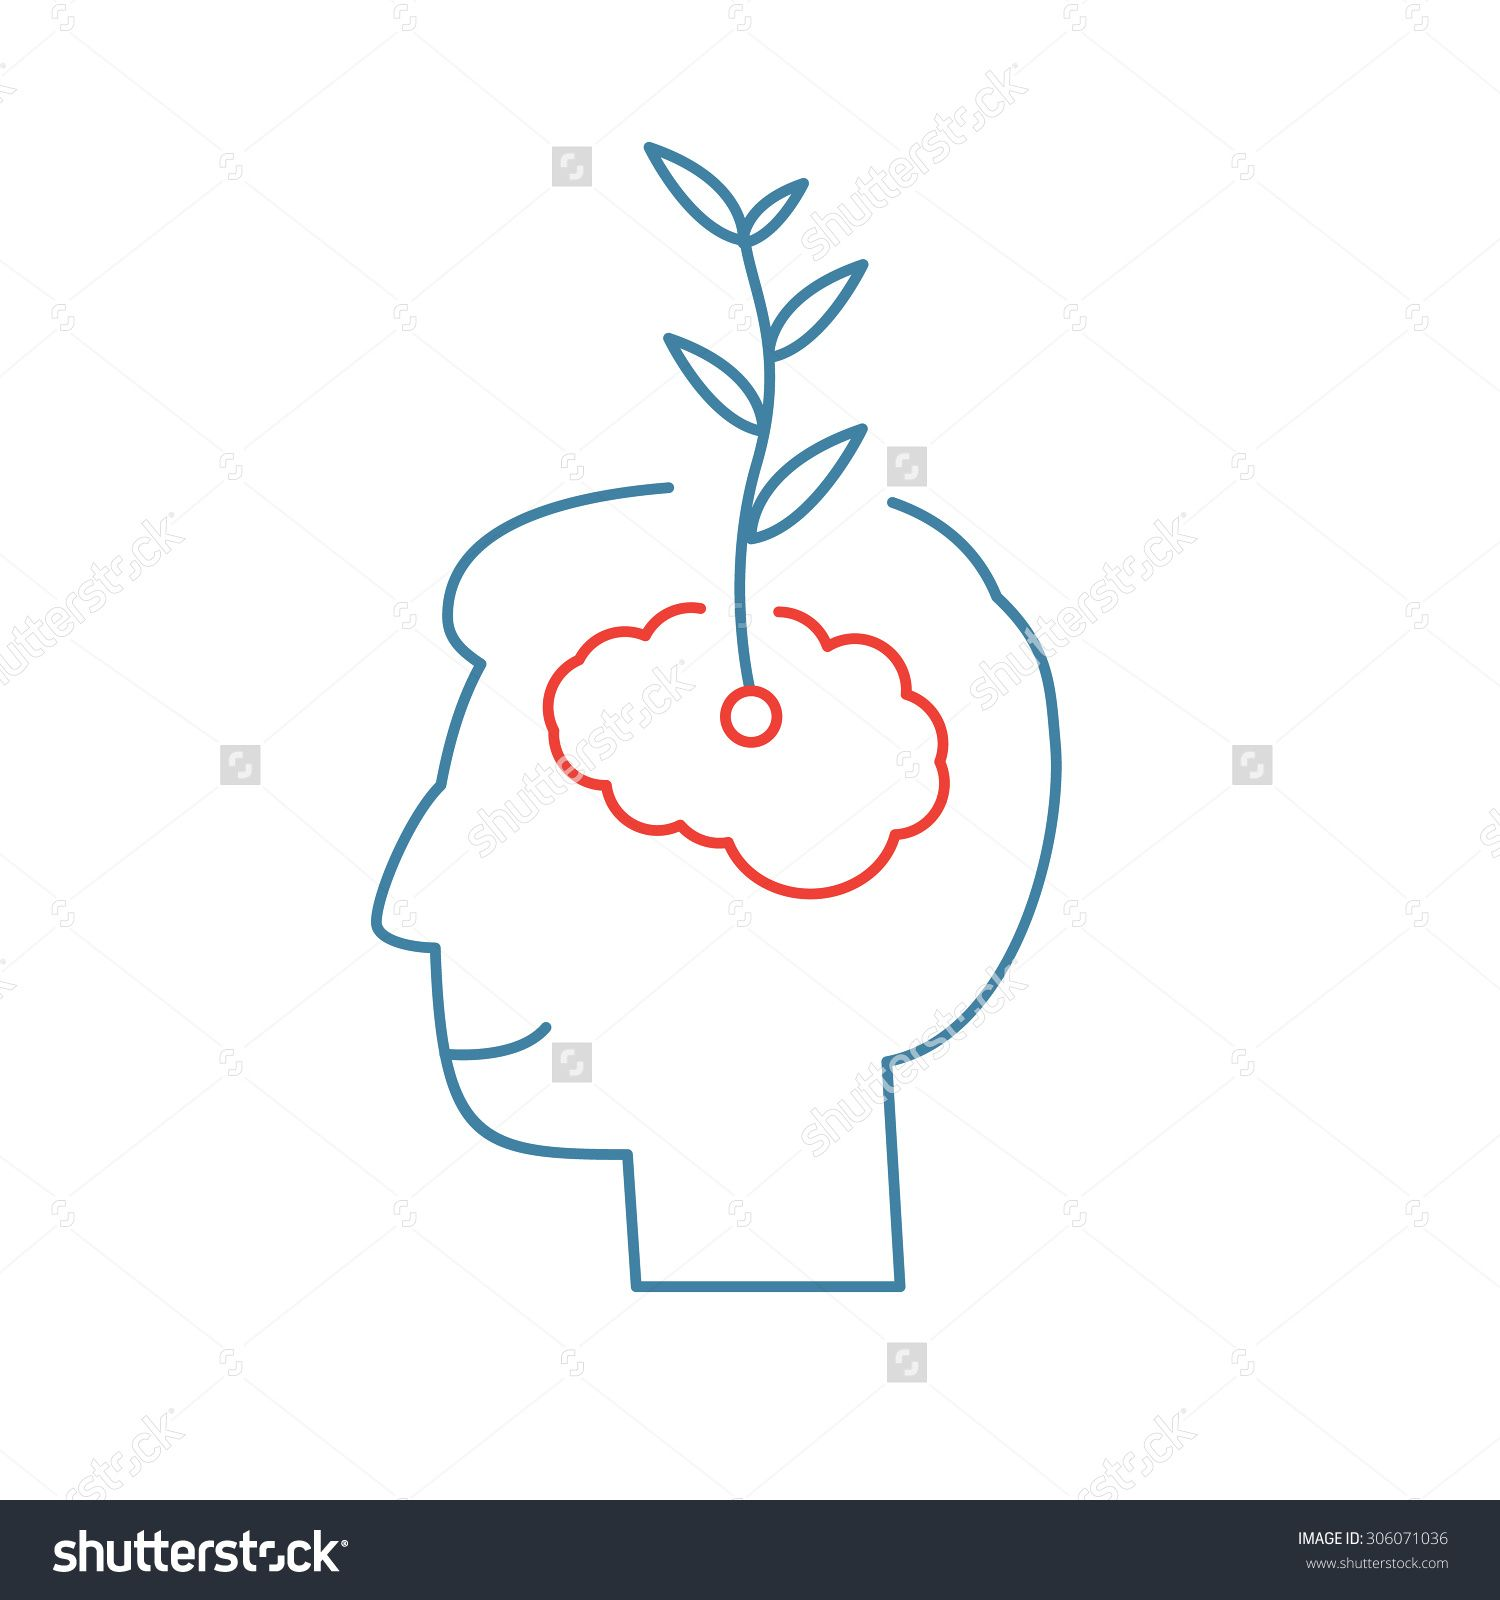 1500x1600 Vector Growth Mindset Skills Icon Growing Plant From The Brain